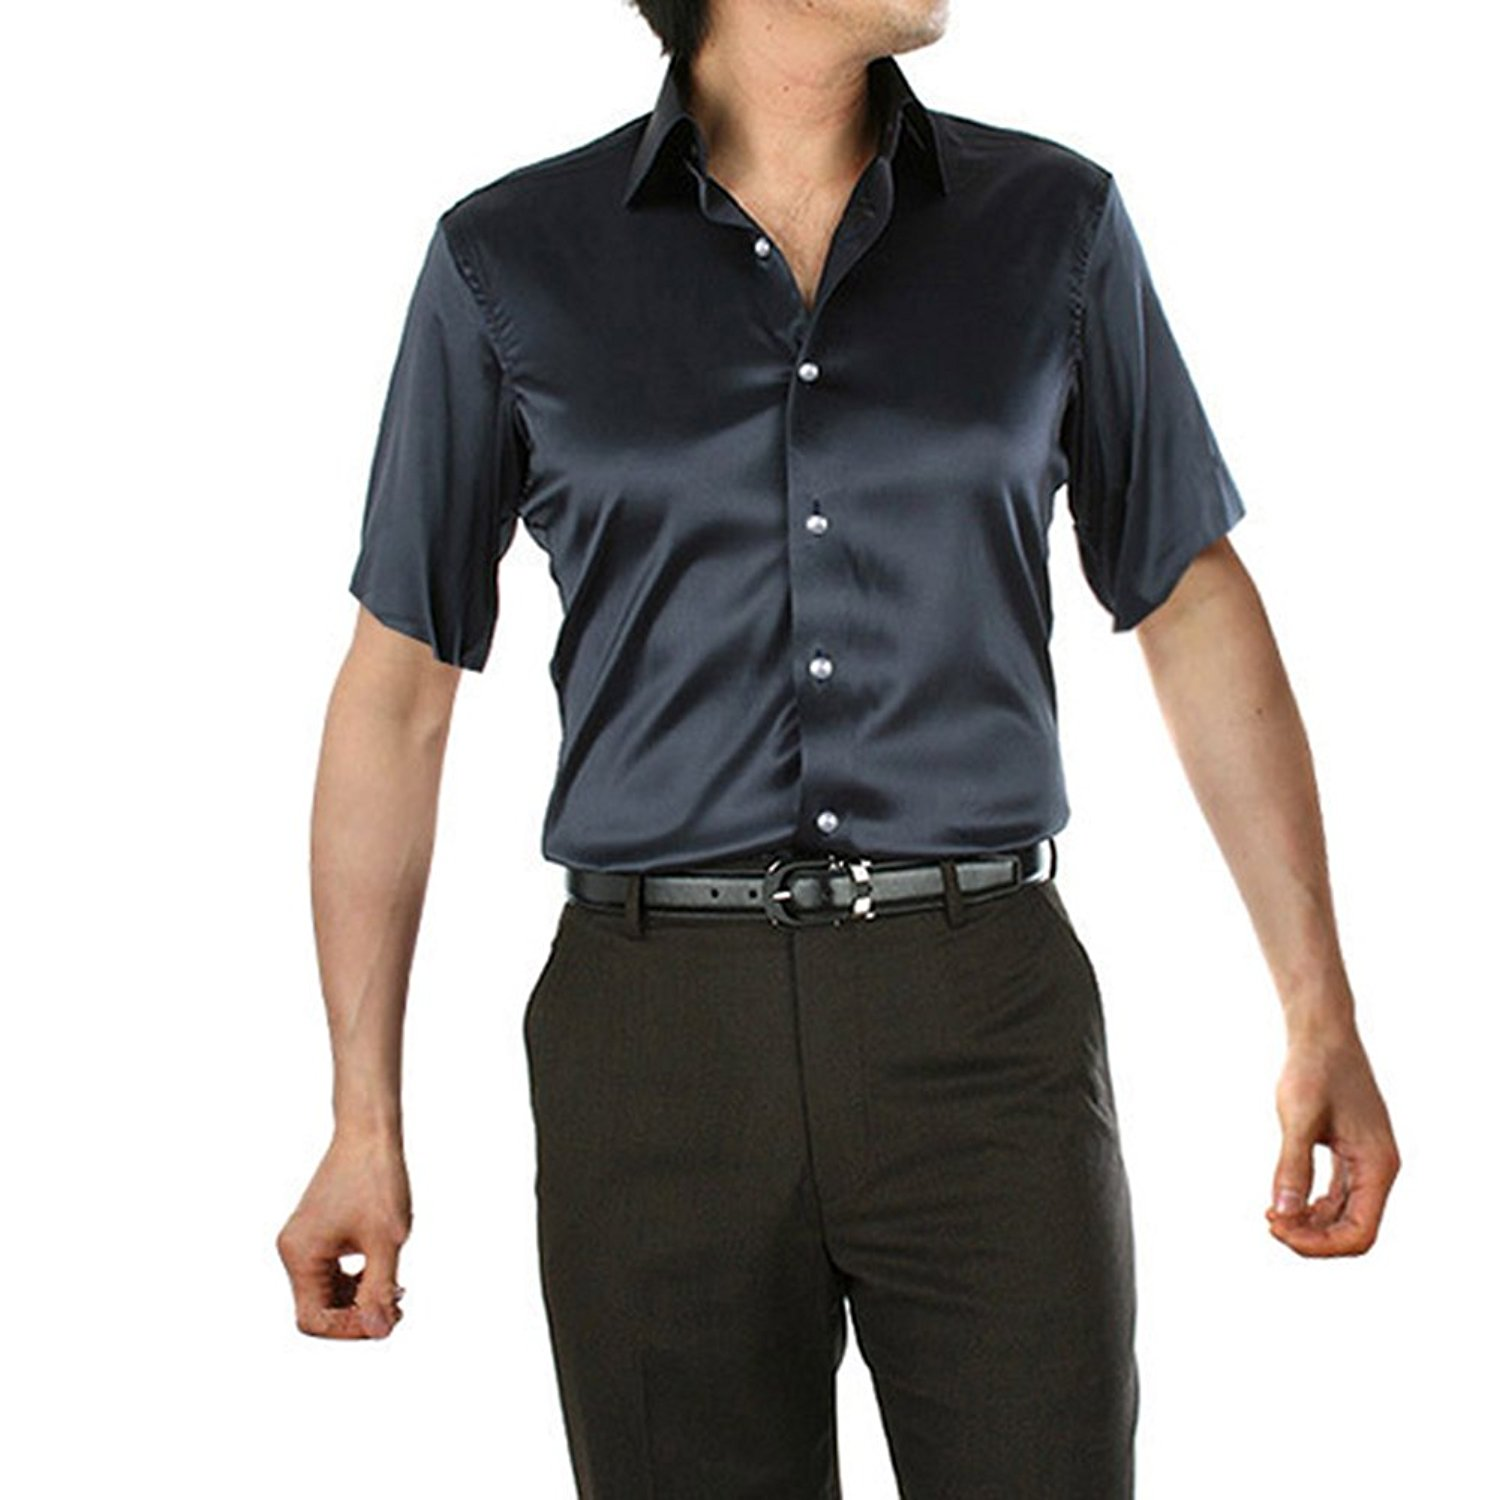 f1804f2e769f23 Get Quotations · ZFWLKJ Men s Fashion Shiny Regular-Fit Solid Color Dance  Prom Silk Like Dress Shirt